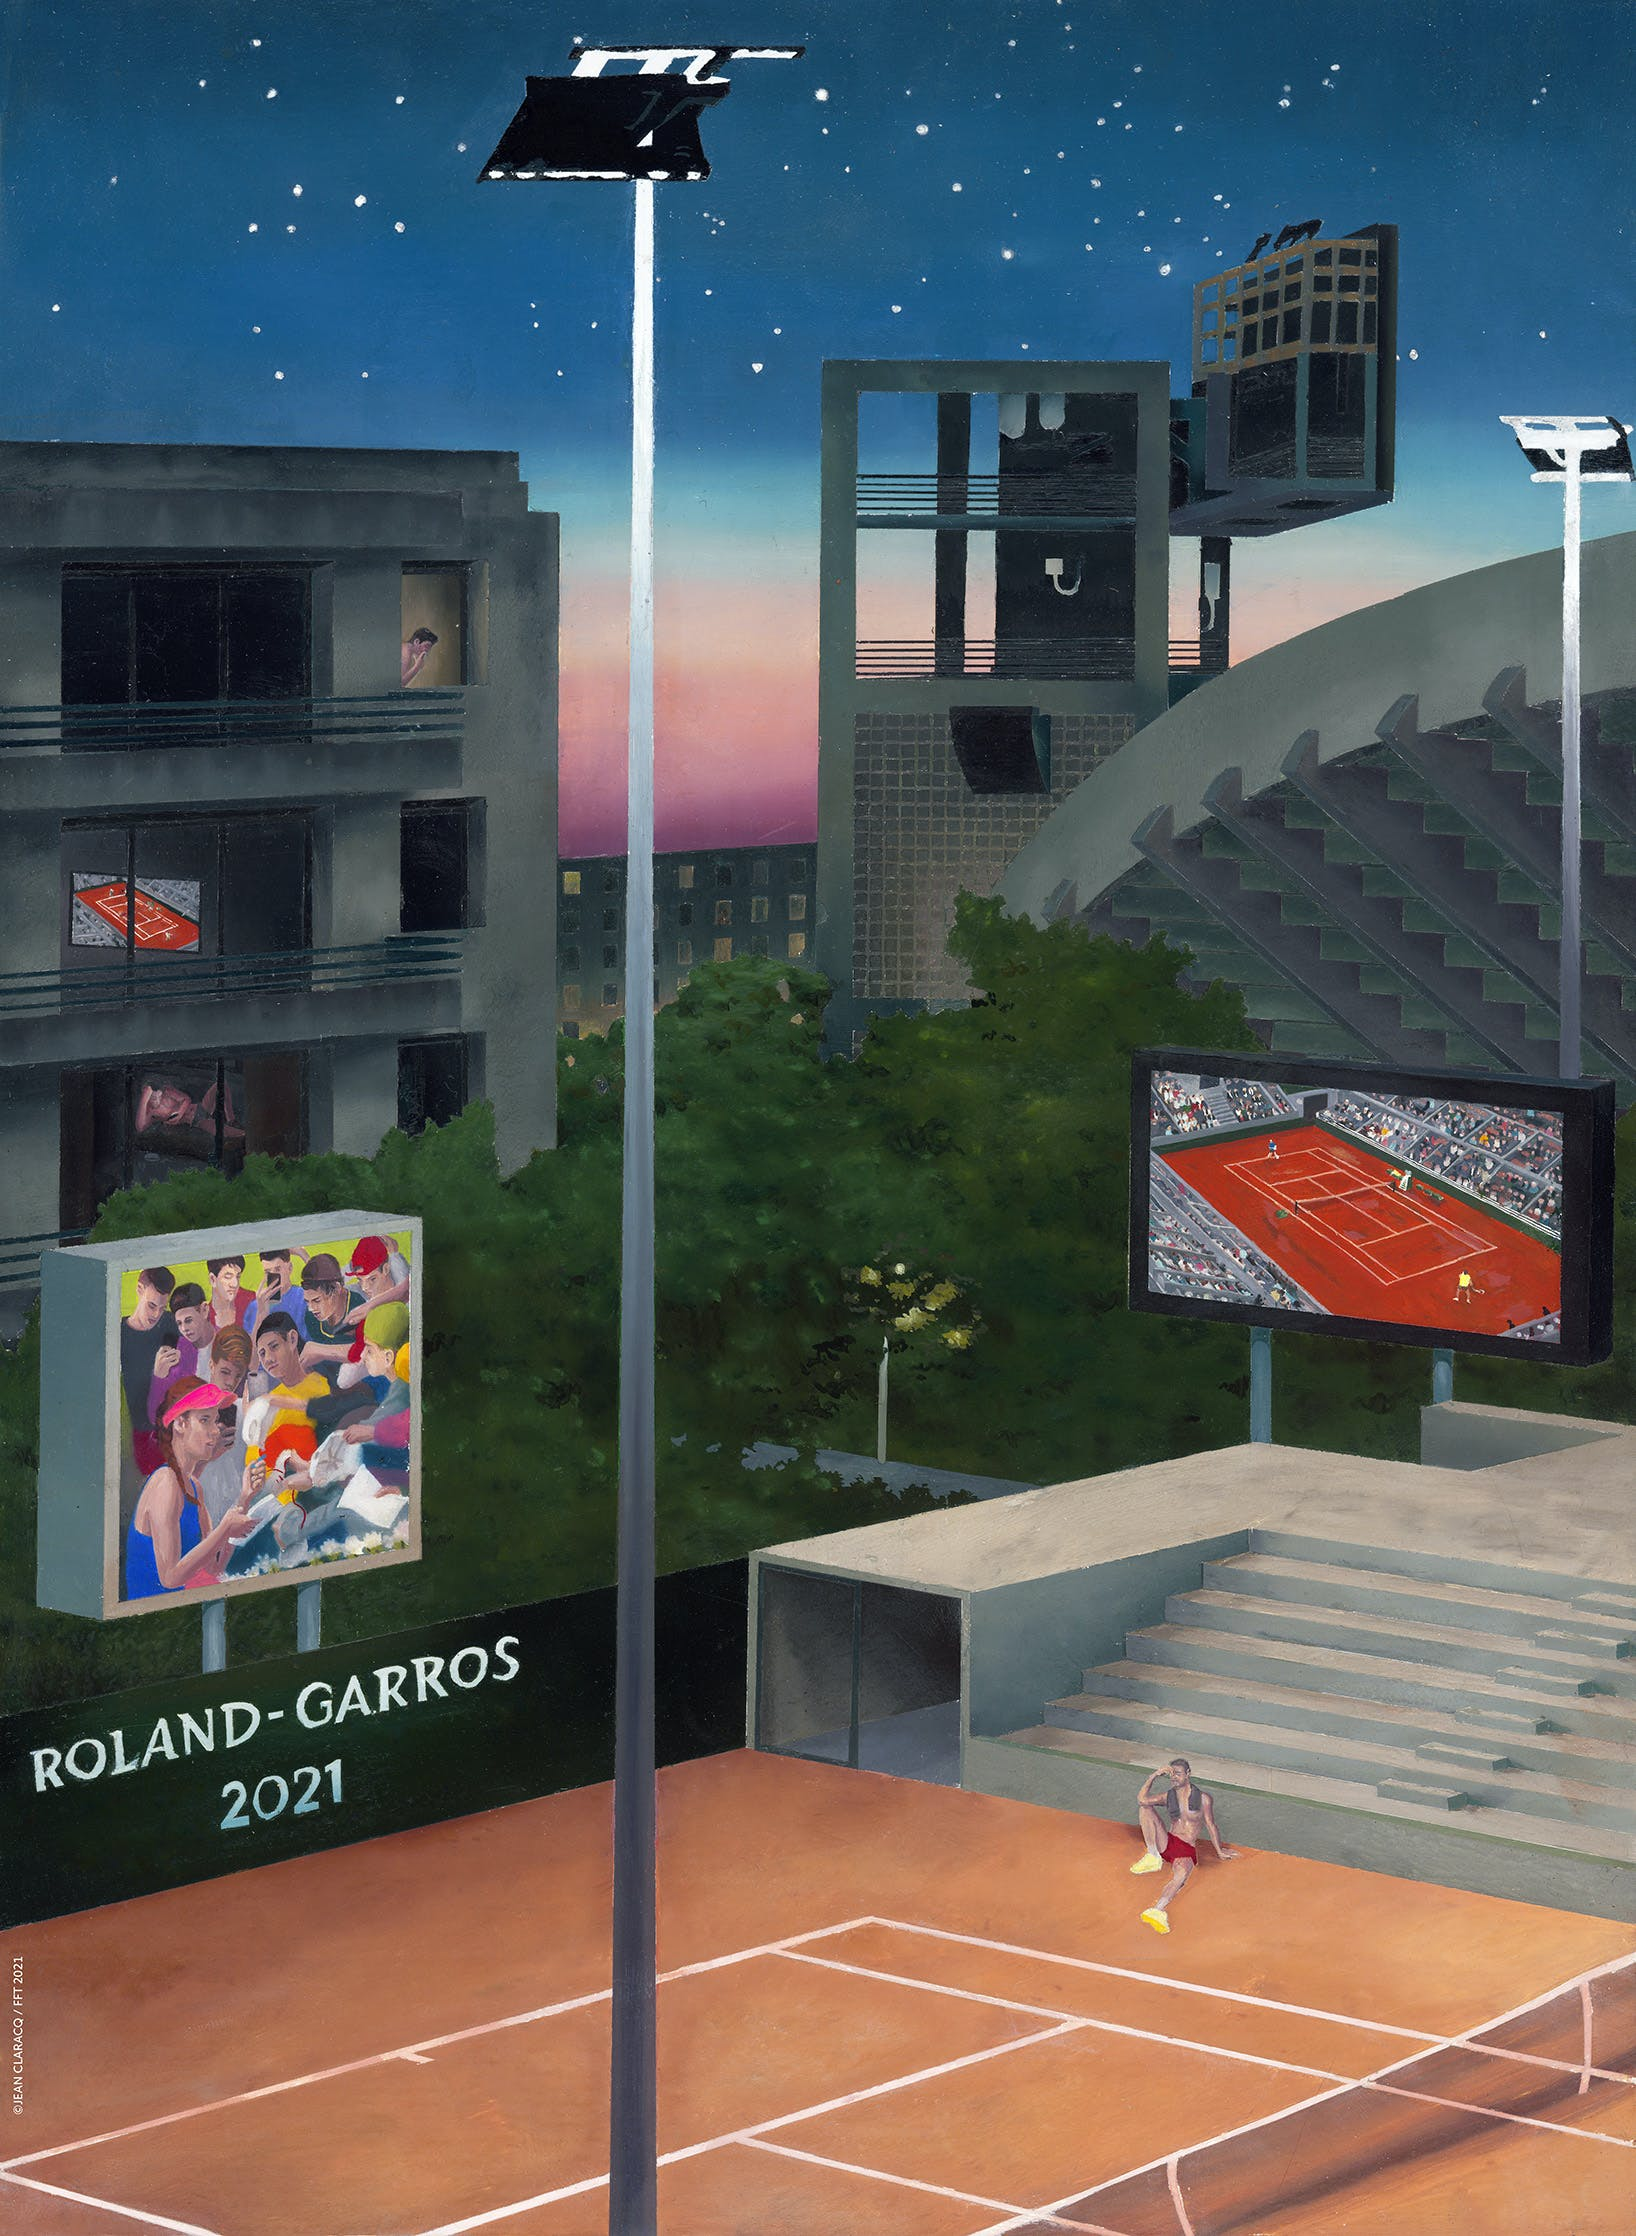 Official Roland-Garros 2021 poster by Jean Claracq